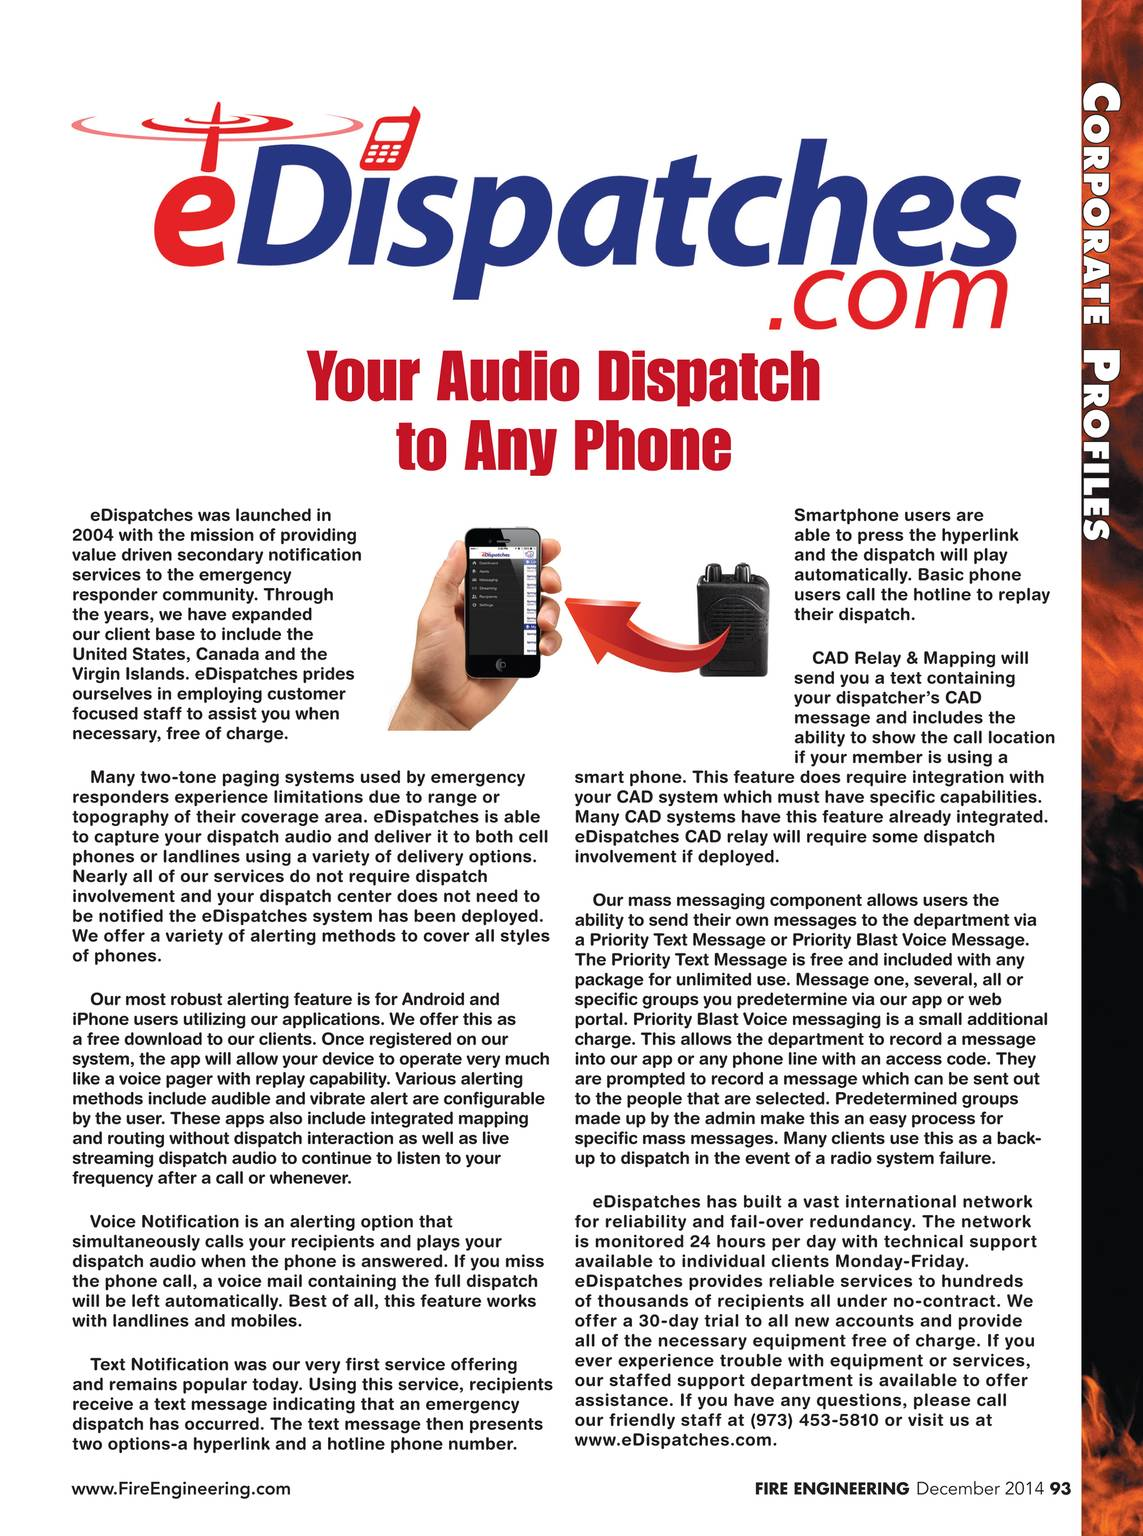 Fire Engineering - December 2014 - page 94